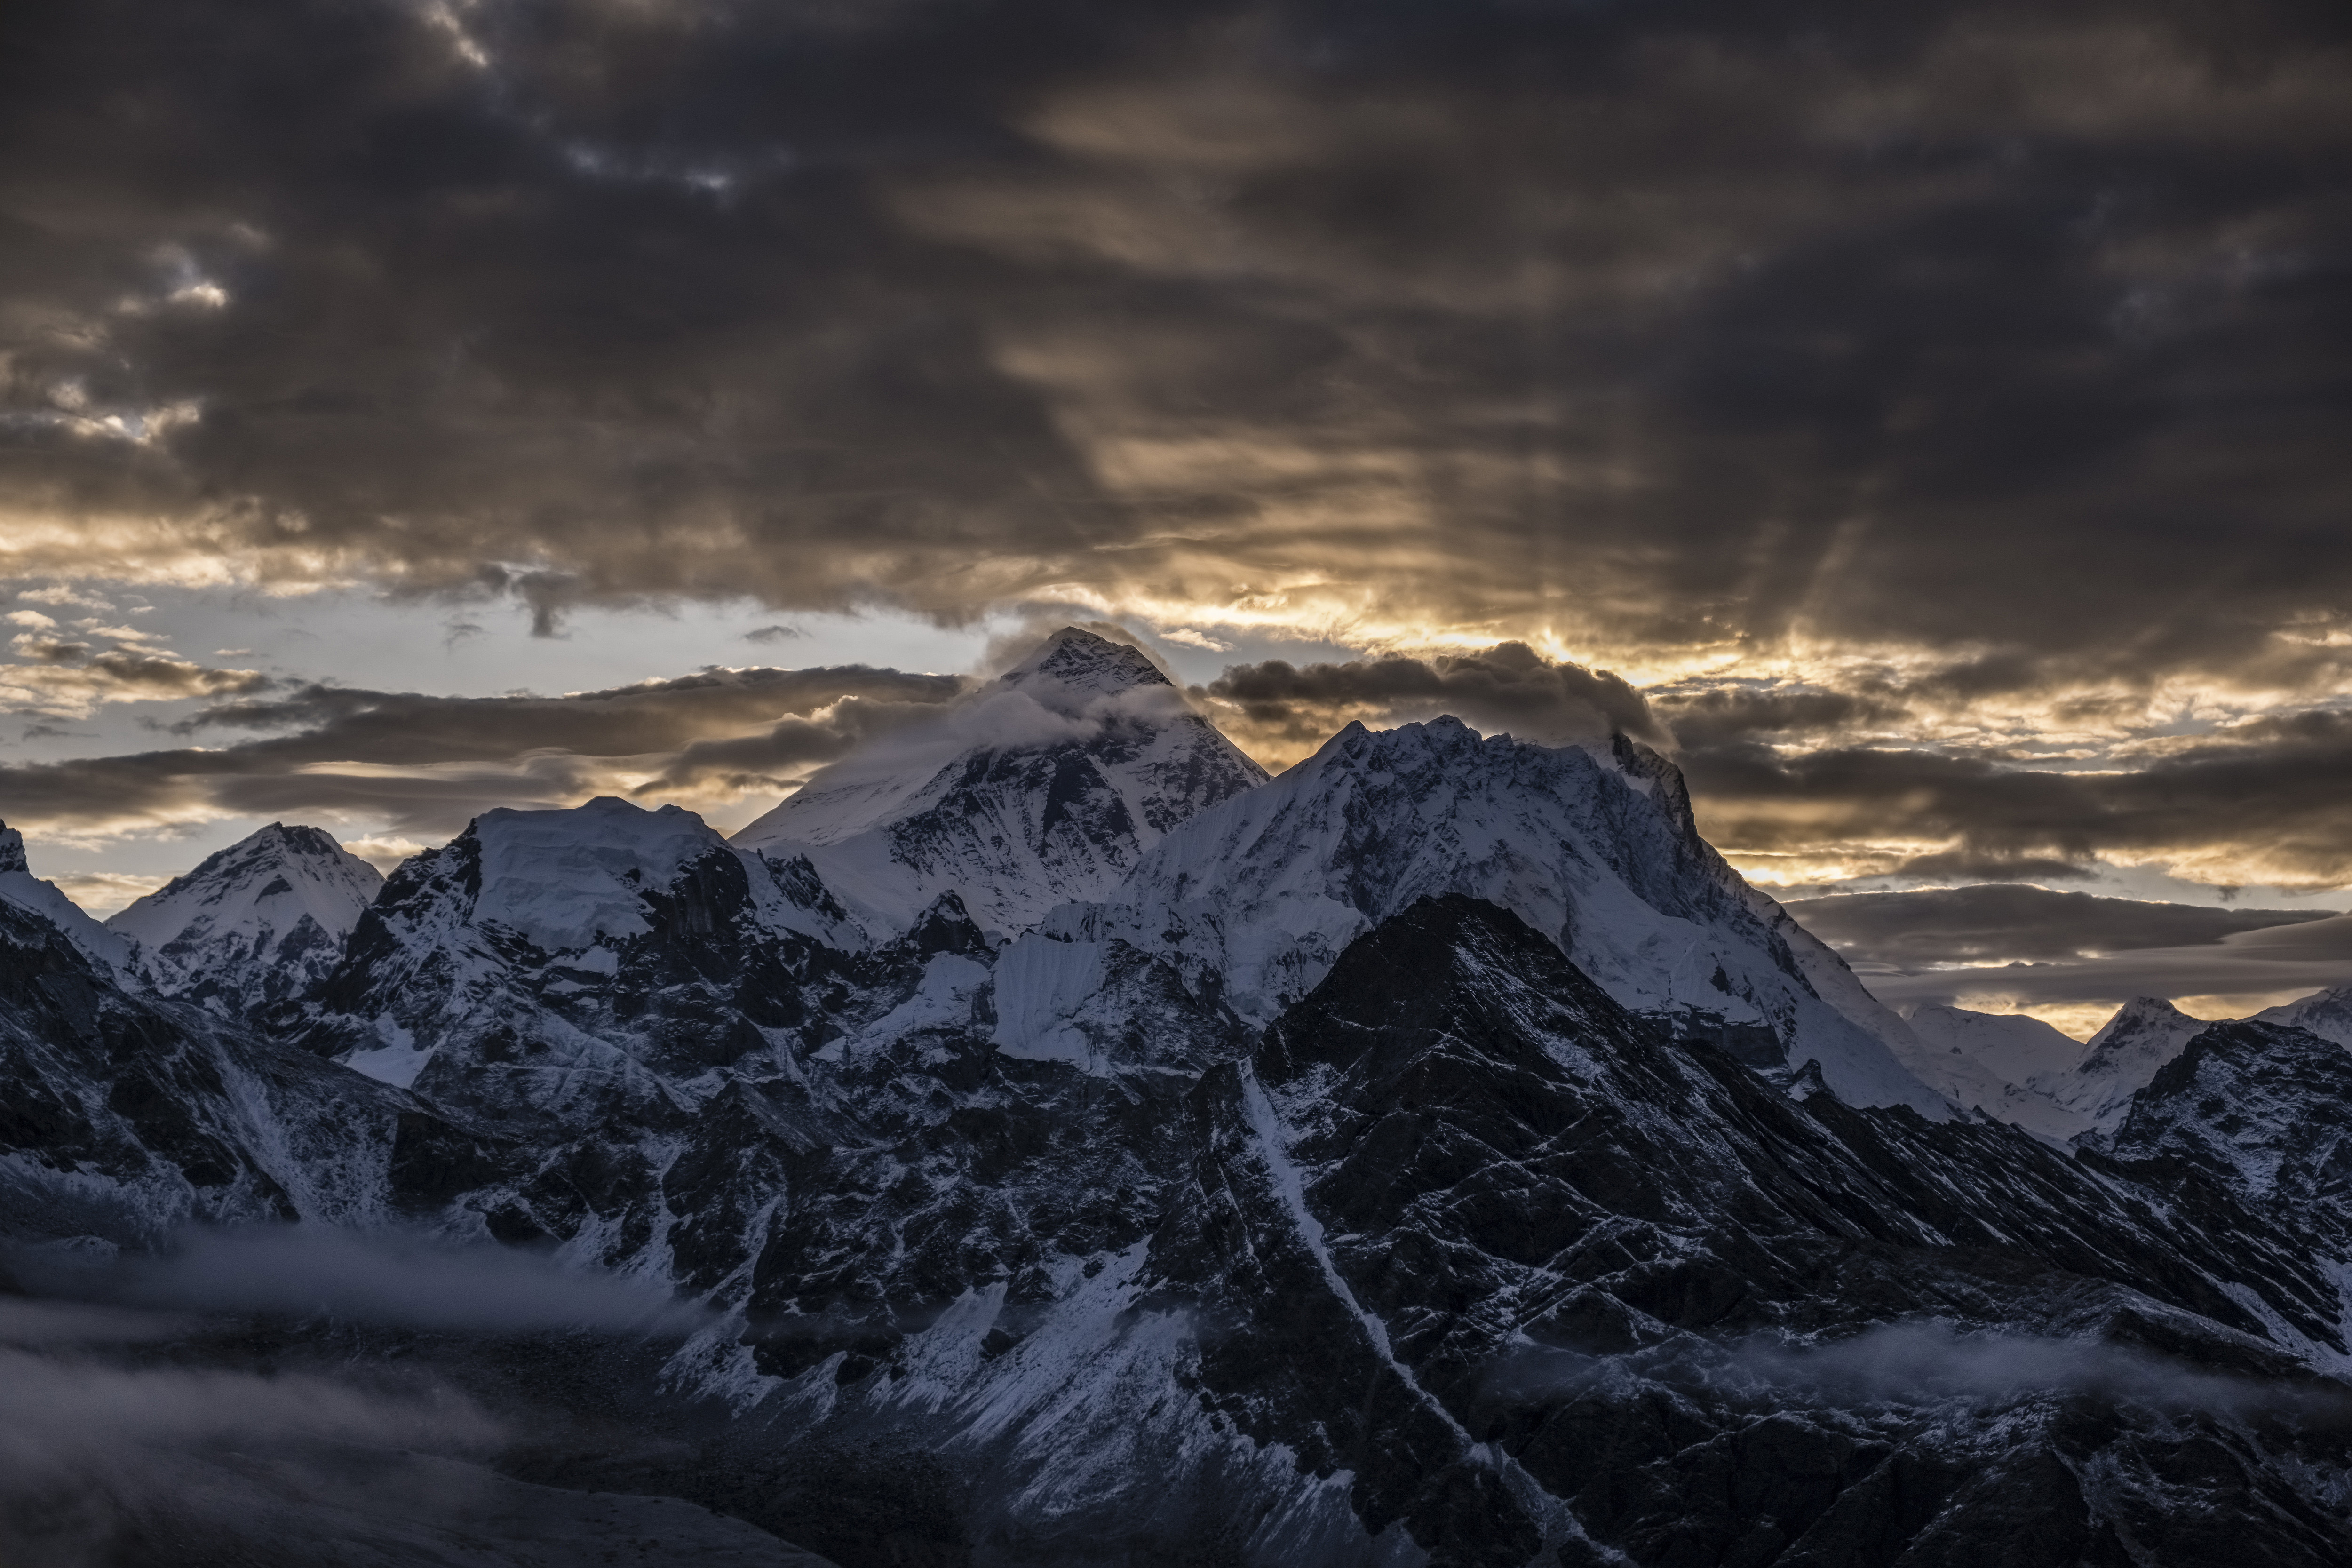 Significant Mount Everest ice loss revealed in spy satellite images